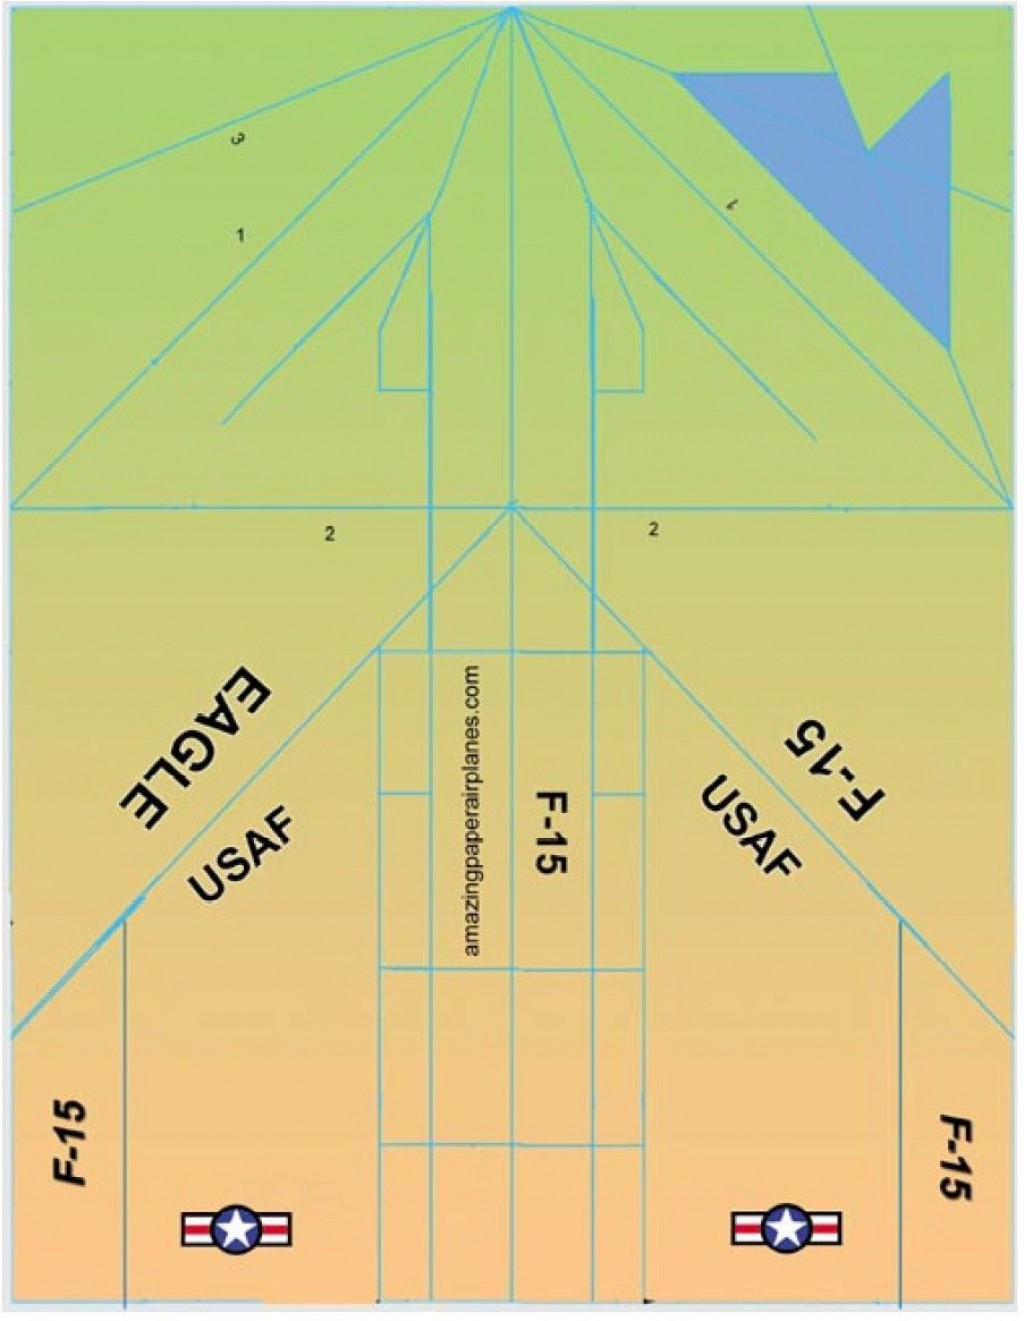 000 Magnificent Printable Paper Airplane Pattern Highest Quality  Free Plane Design Designs-printable TemplateLarge